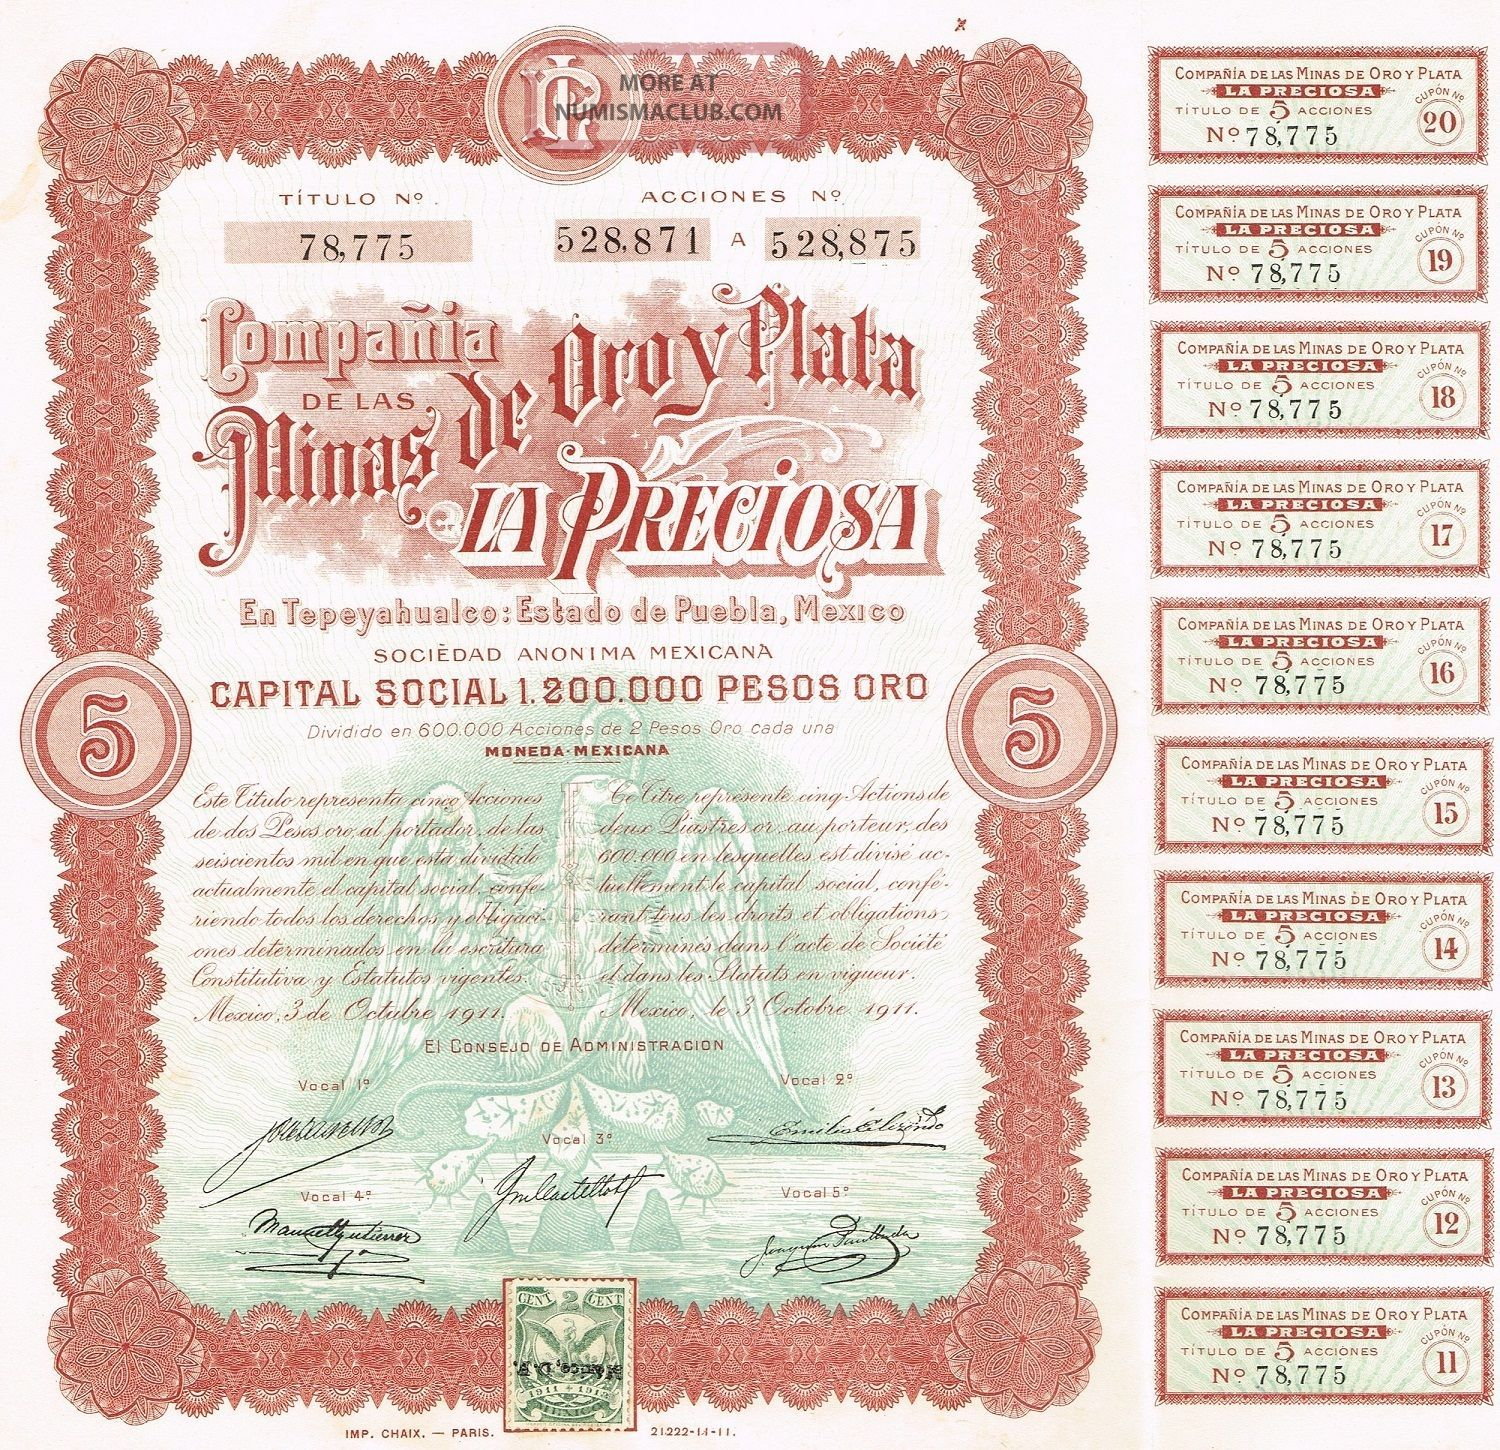 Mexico Mines Of Oroy Plata La Preciosa Company Bond Stock Certificate 1911 World photo